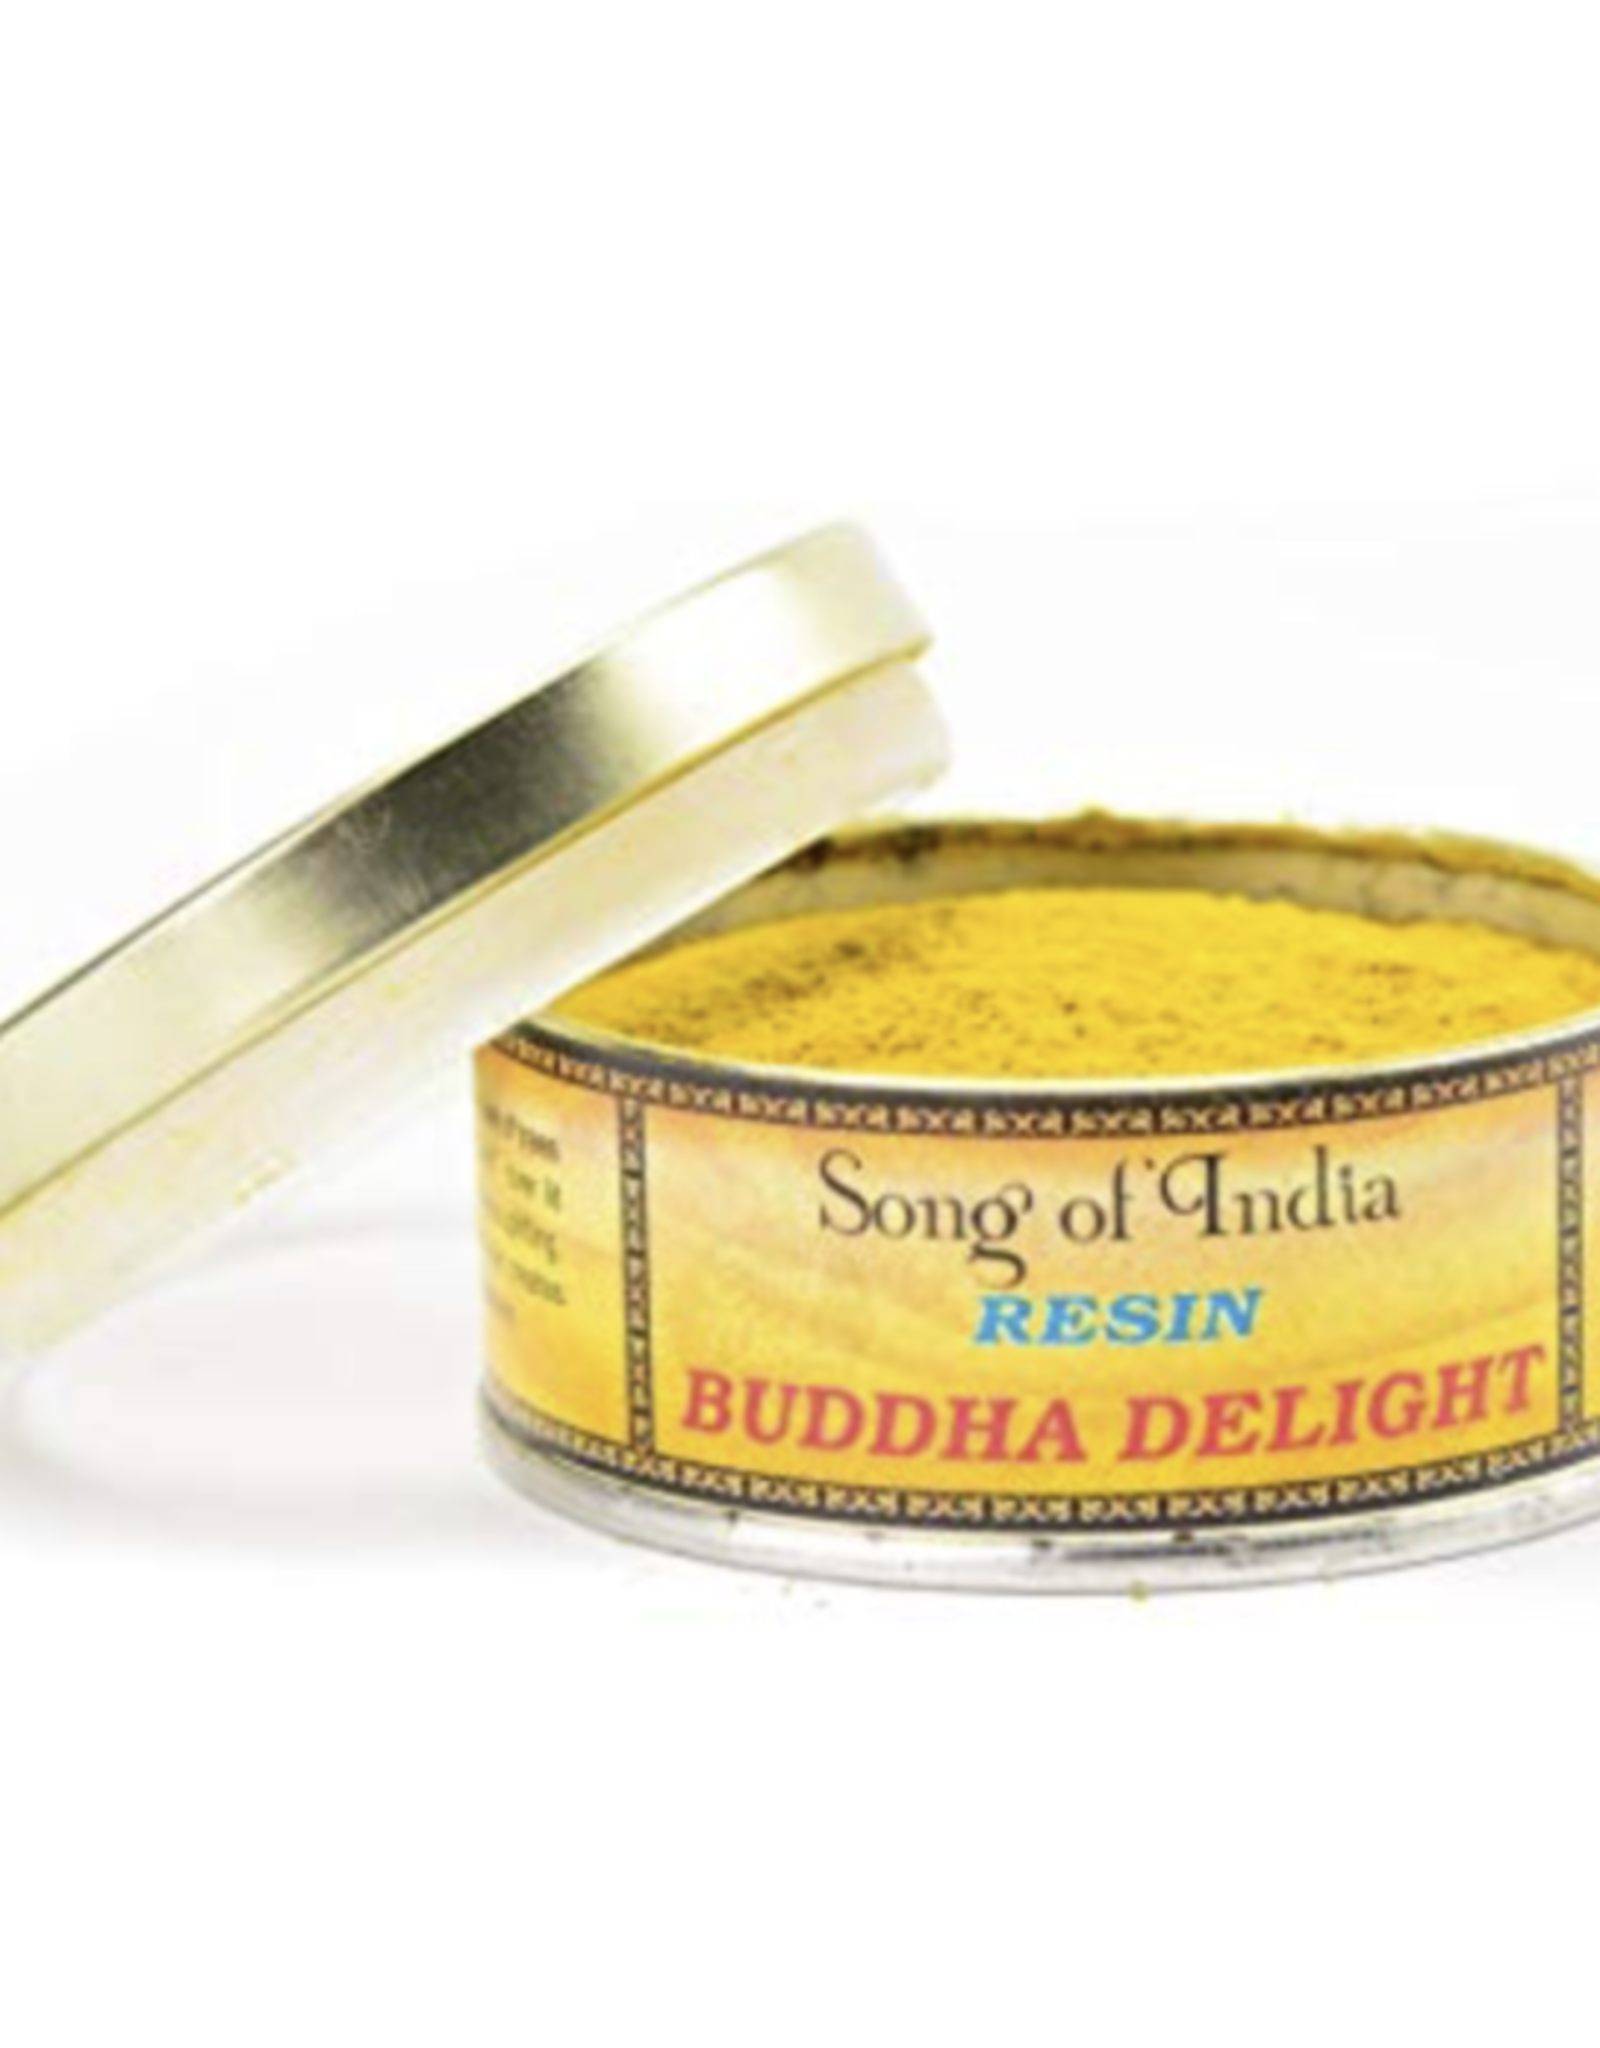 Song of India Buddha Delight - Natural Resin Incense